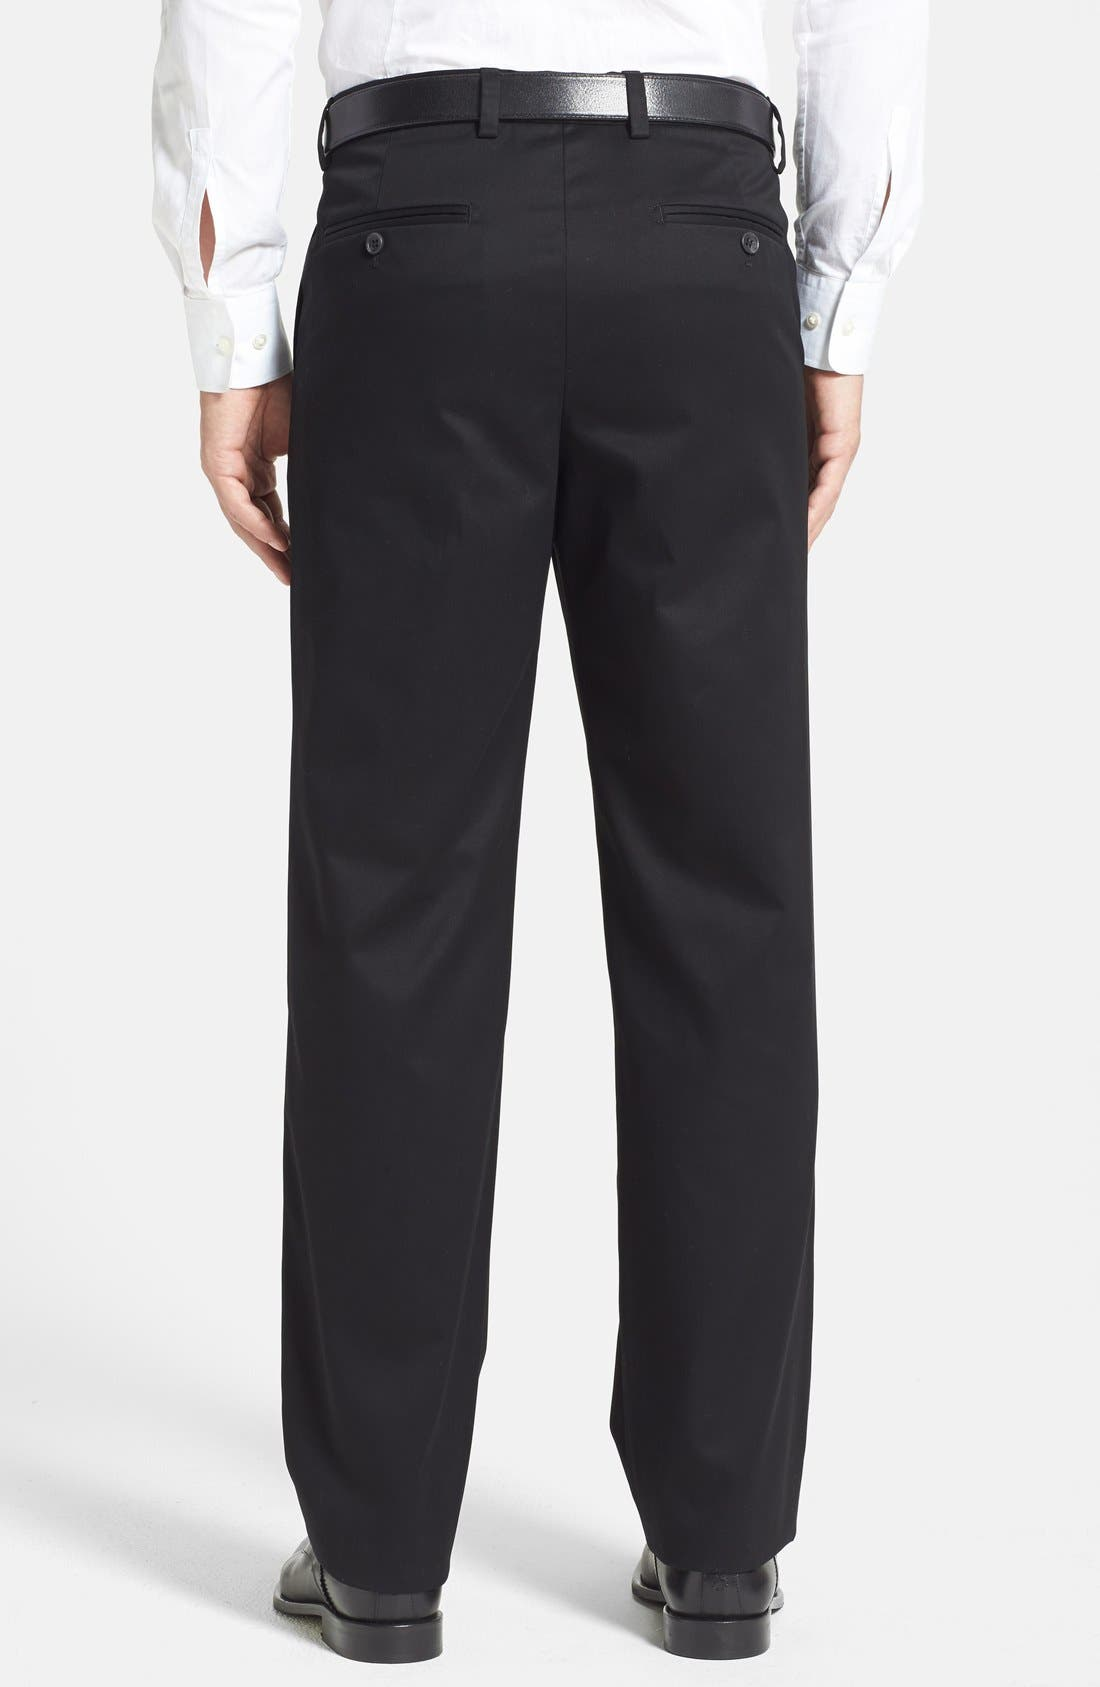 NORDSTROM MEN'S SHOP,                             'Classic' Smartcare<sup>™</sup> Relaxed Fit Flat Front Cotton Pants,                             Alternate thumbnail 3, color,                             BLACK